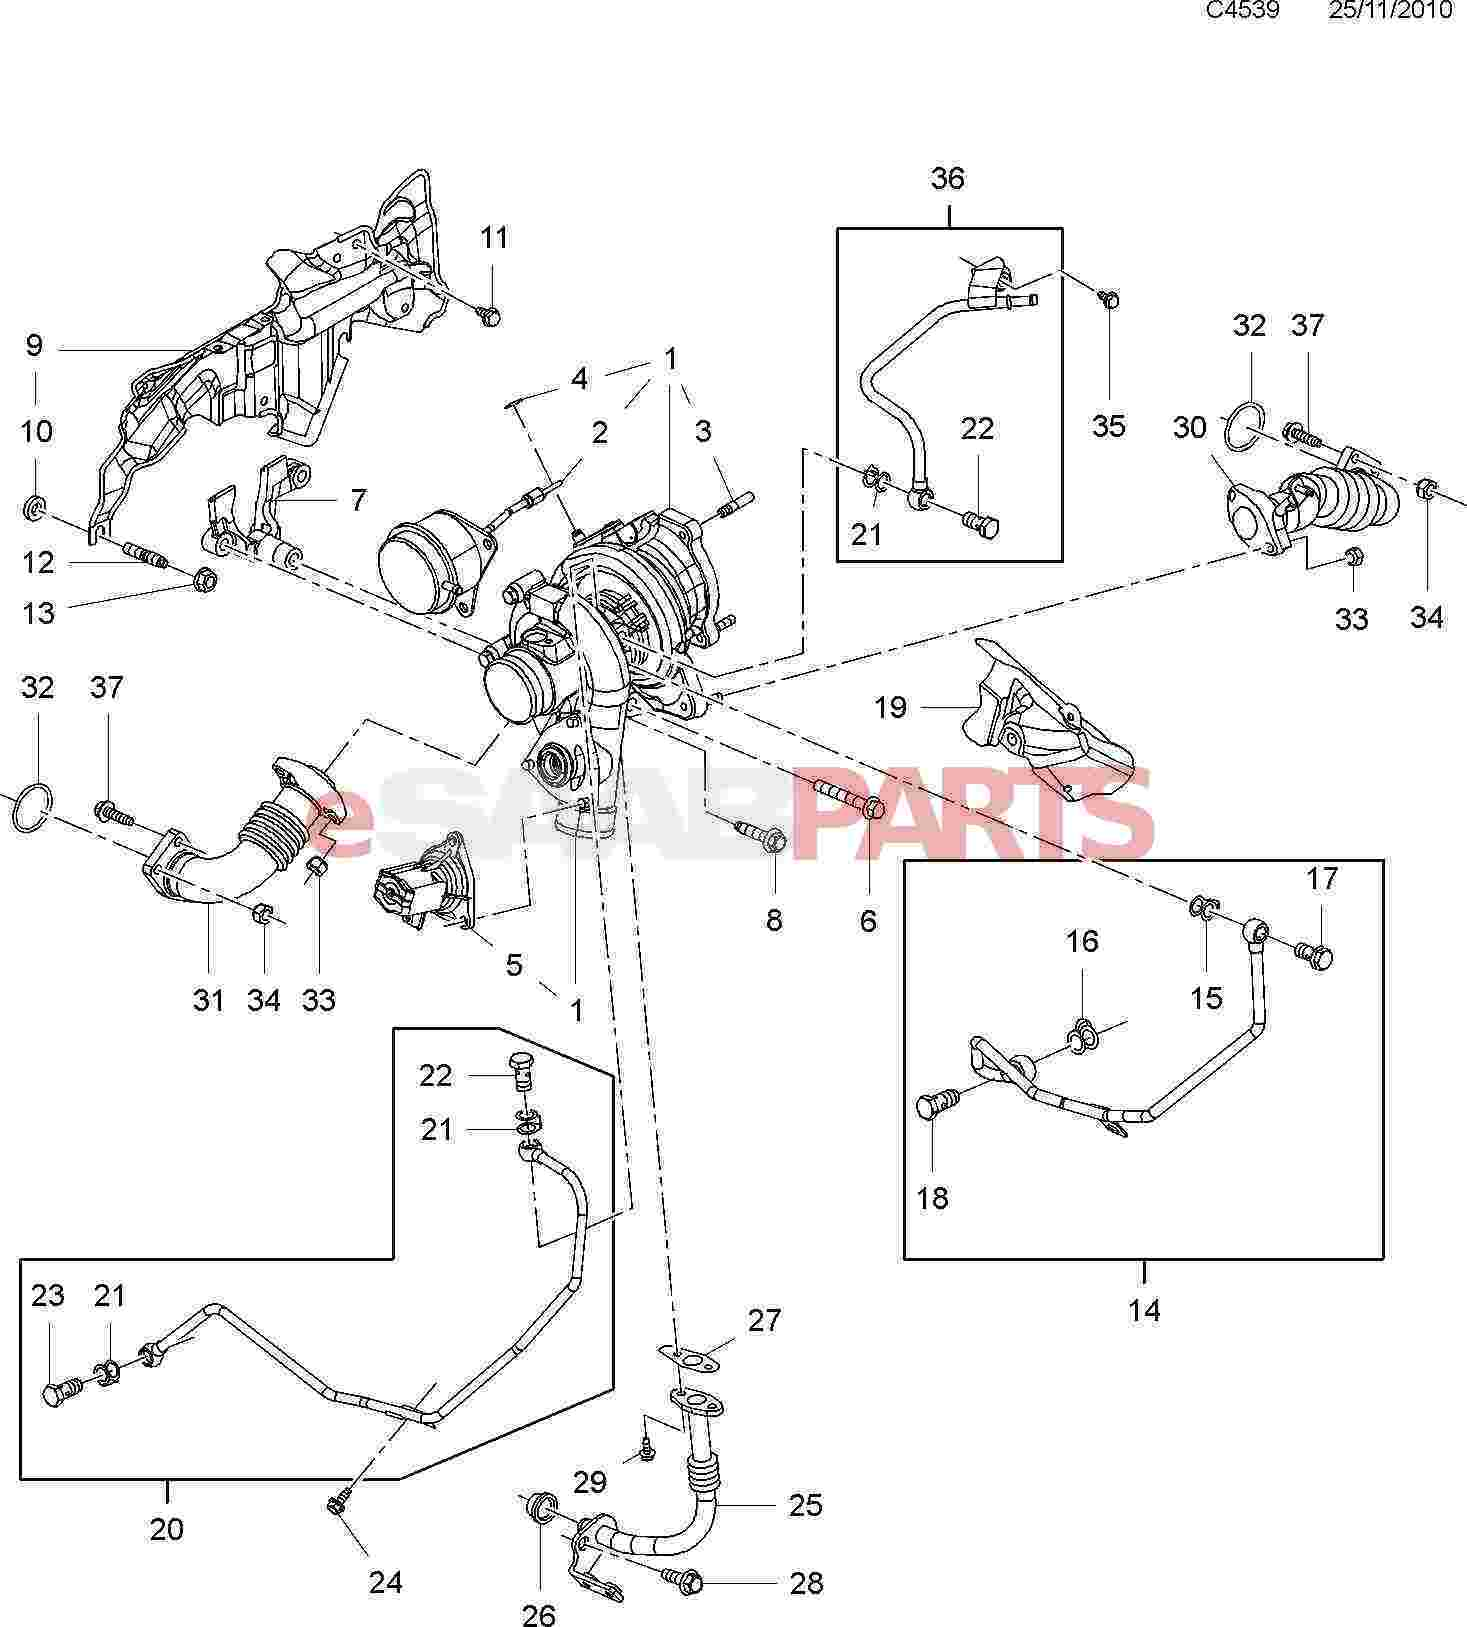 hight resolution of saab 2 3 engine diagram wiring database library rh 17 arteciock de 2000 saab 9 3 2 0 turbo vacuum diagram 2003 saab 9 3 turbo fuse box diagram